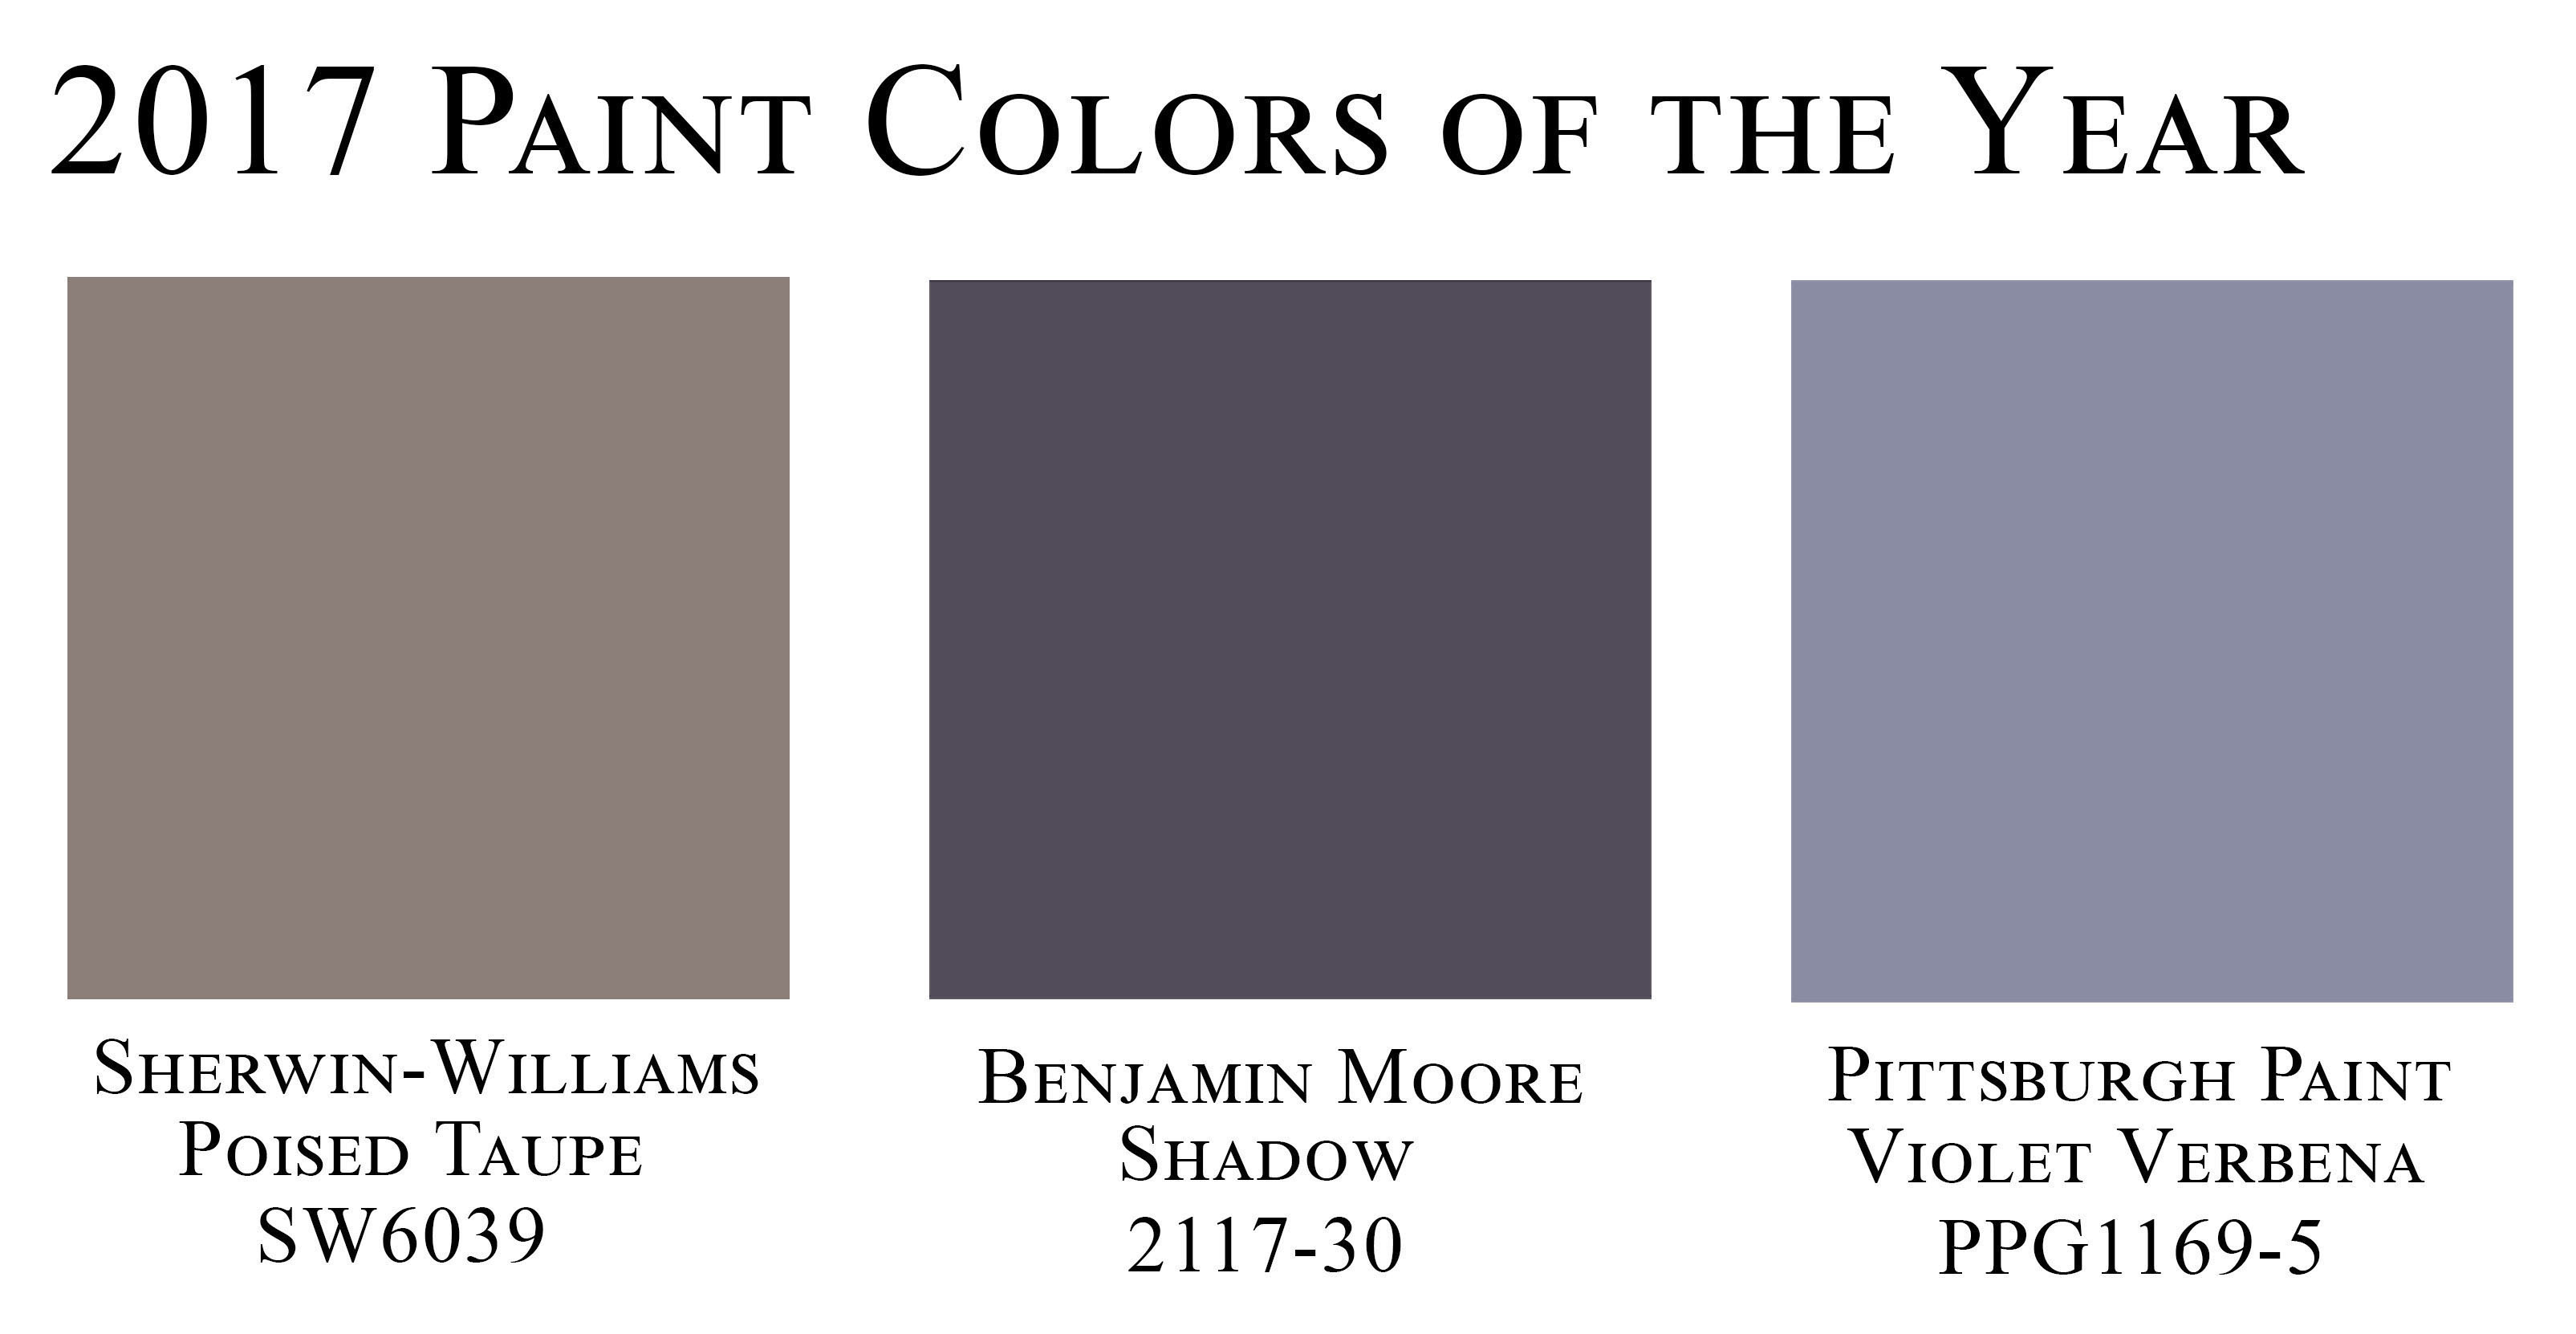 28 Top Colors 2017 Benjamin Moore S 2017 Paint